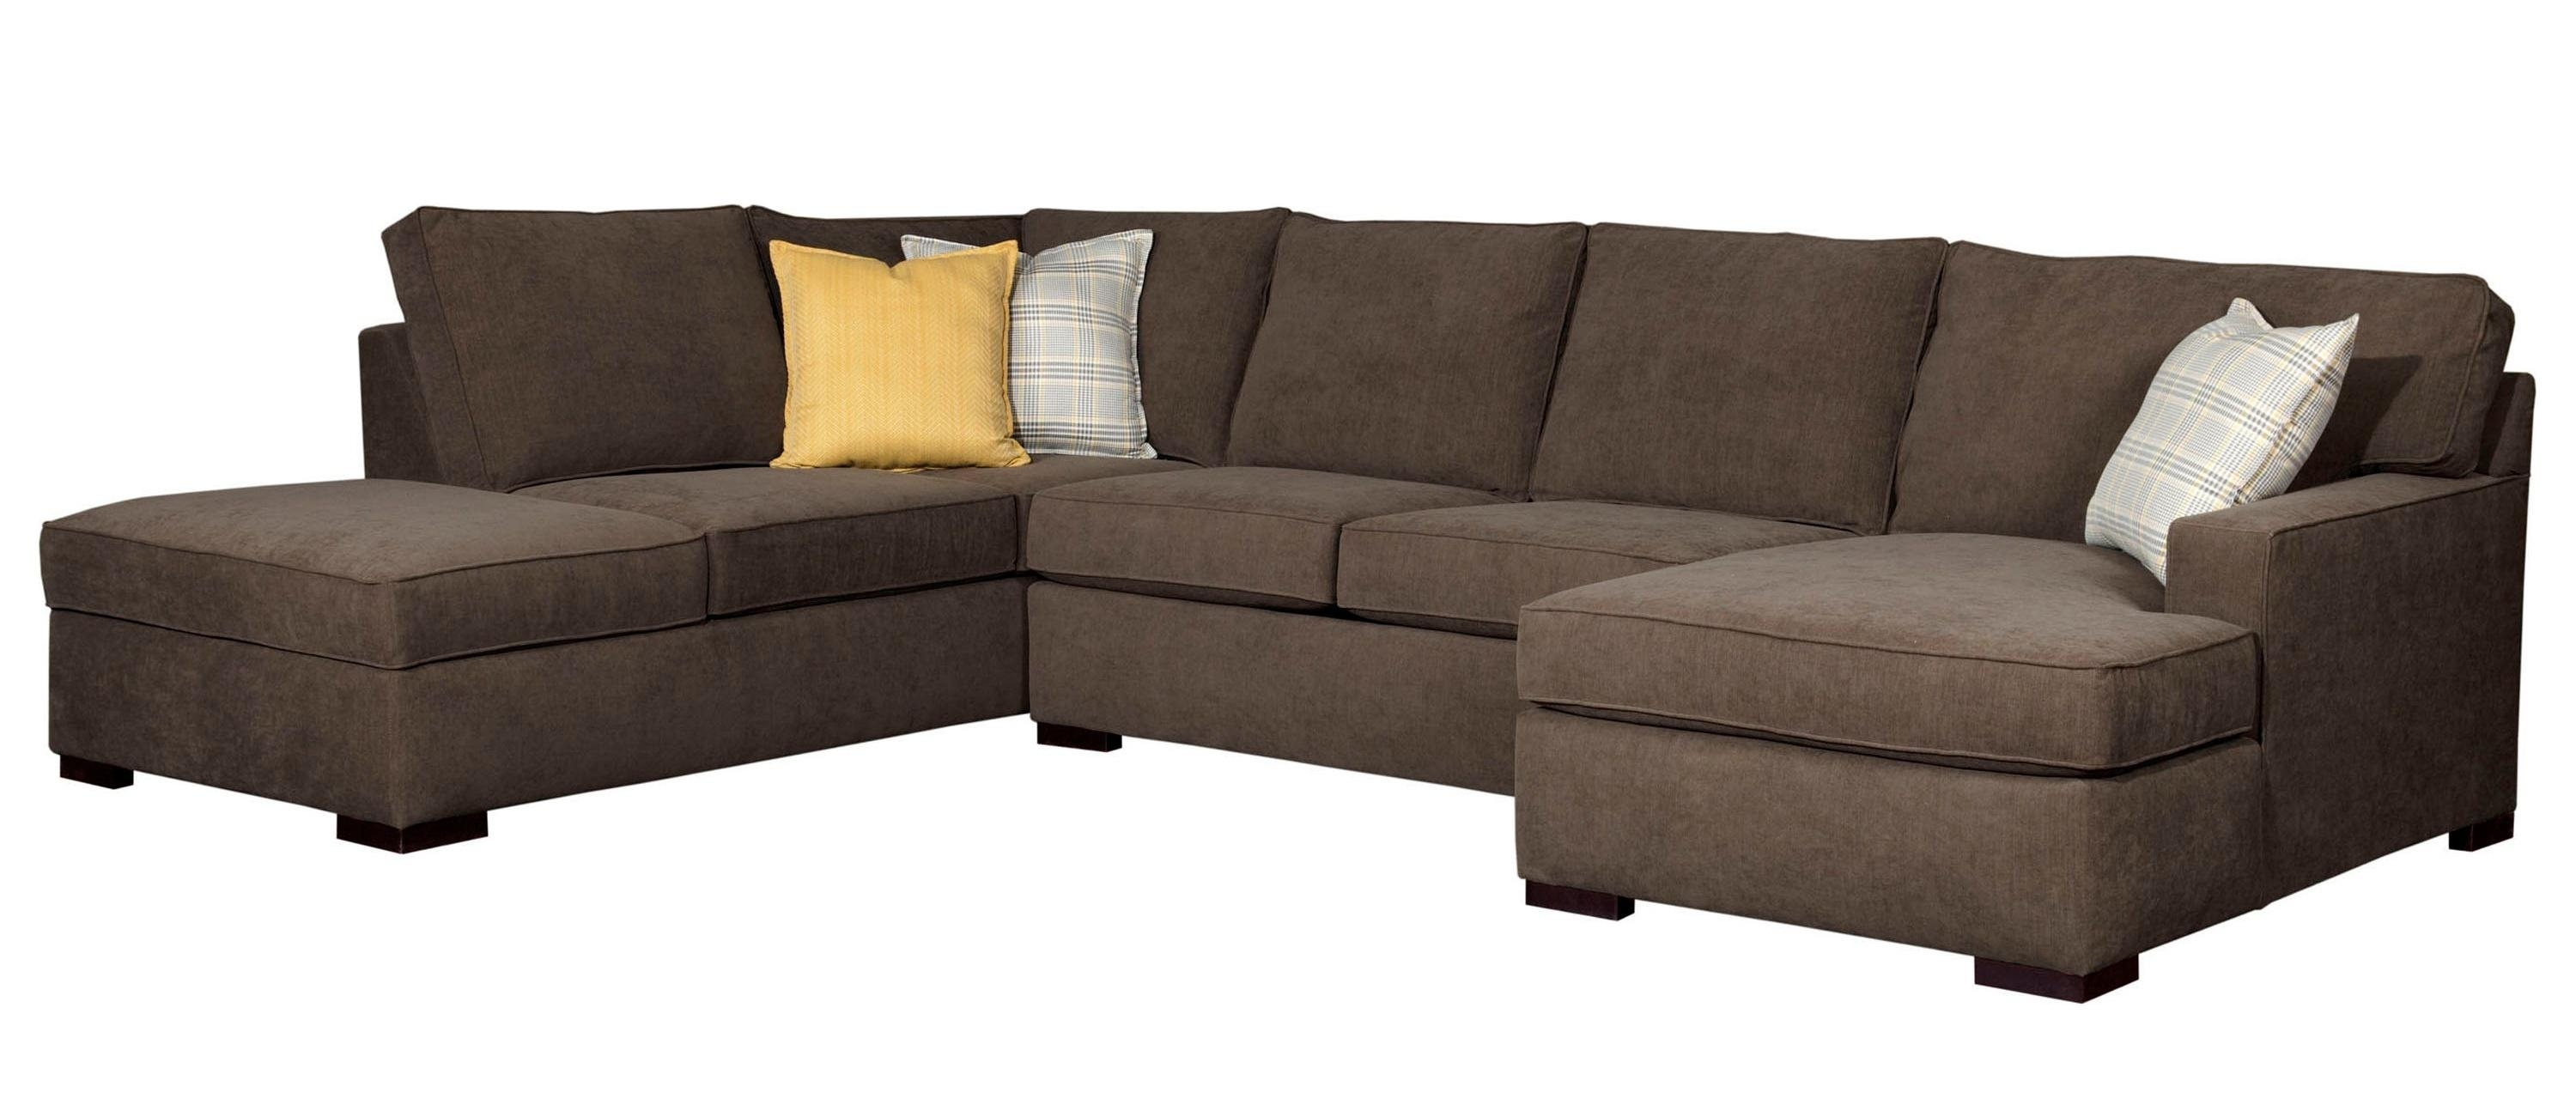 Broyhill Furniture Raphael Contemporary Sectional Sofa With Raf throughout Norfolk Chocolate 6 Piece Sectionals With Raf Chaise (Image 3 of 30)